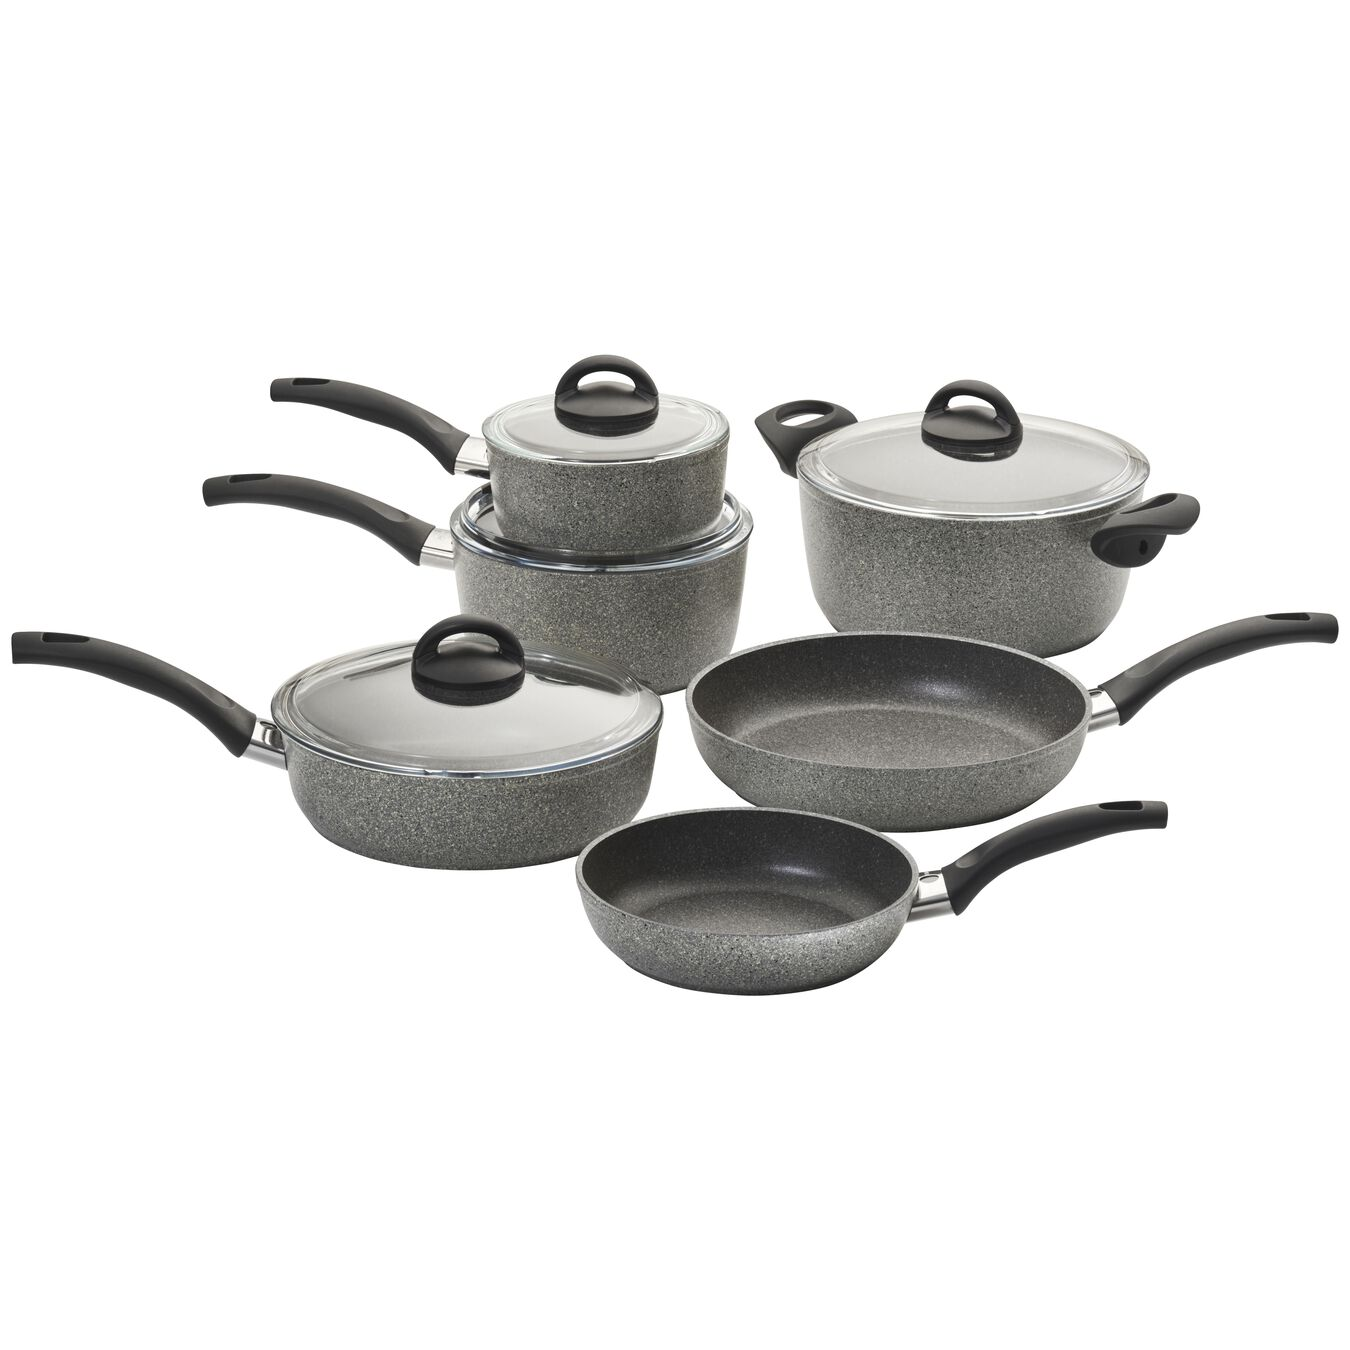 10-pc, Non-stick, Pots and pans set,,large 1